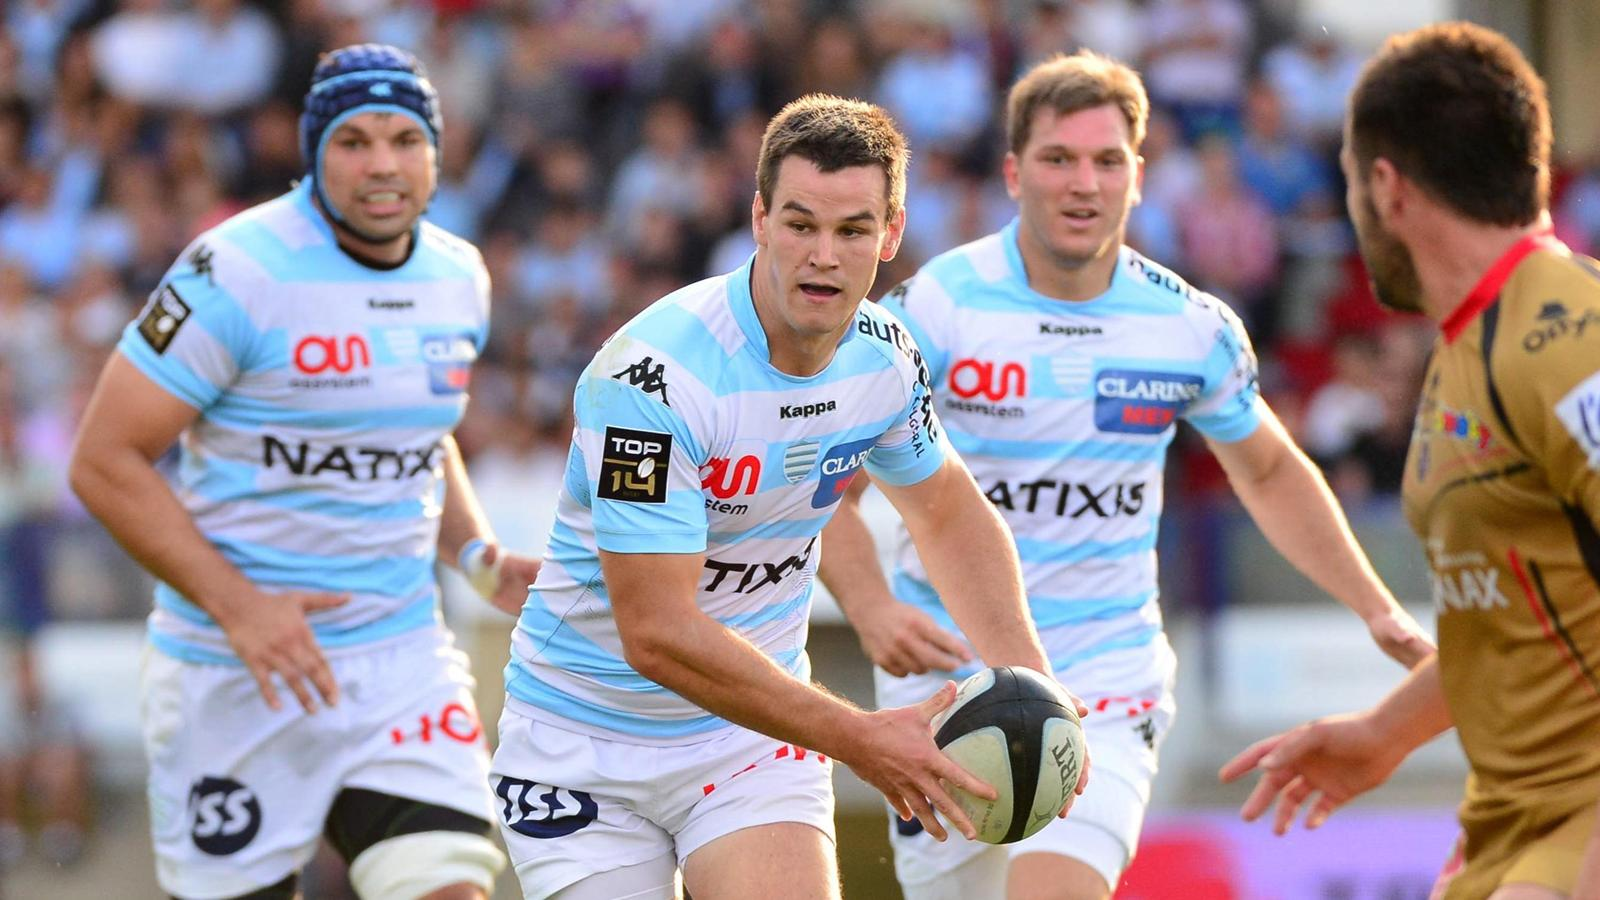 Rugby Top 14: Racing Métro 92 vs Oyonnax en direct live streaming